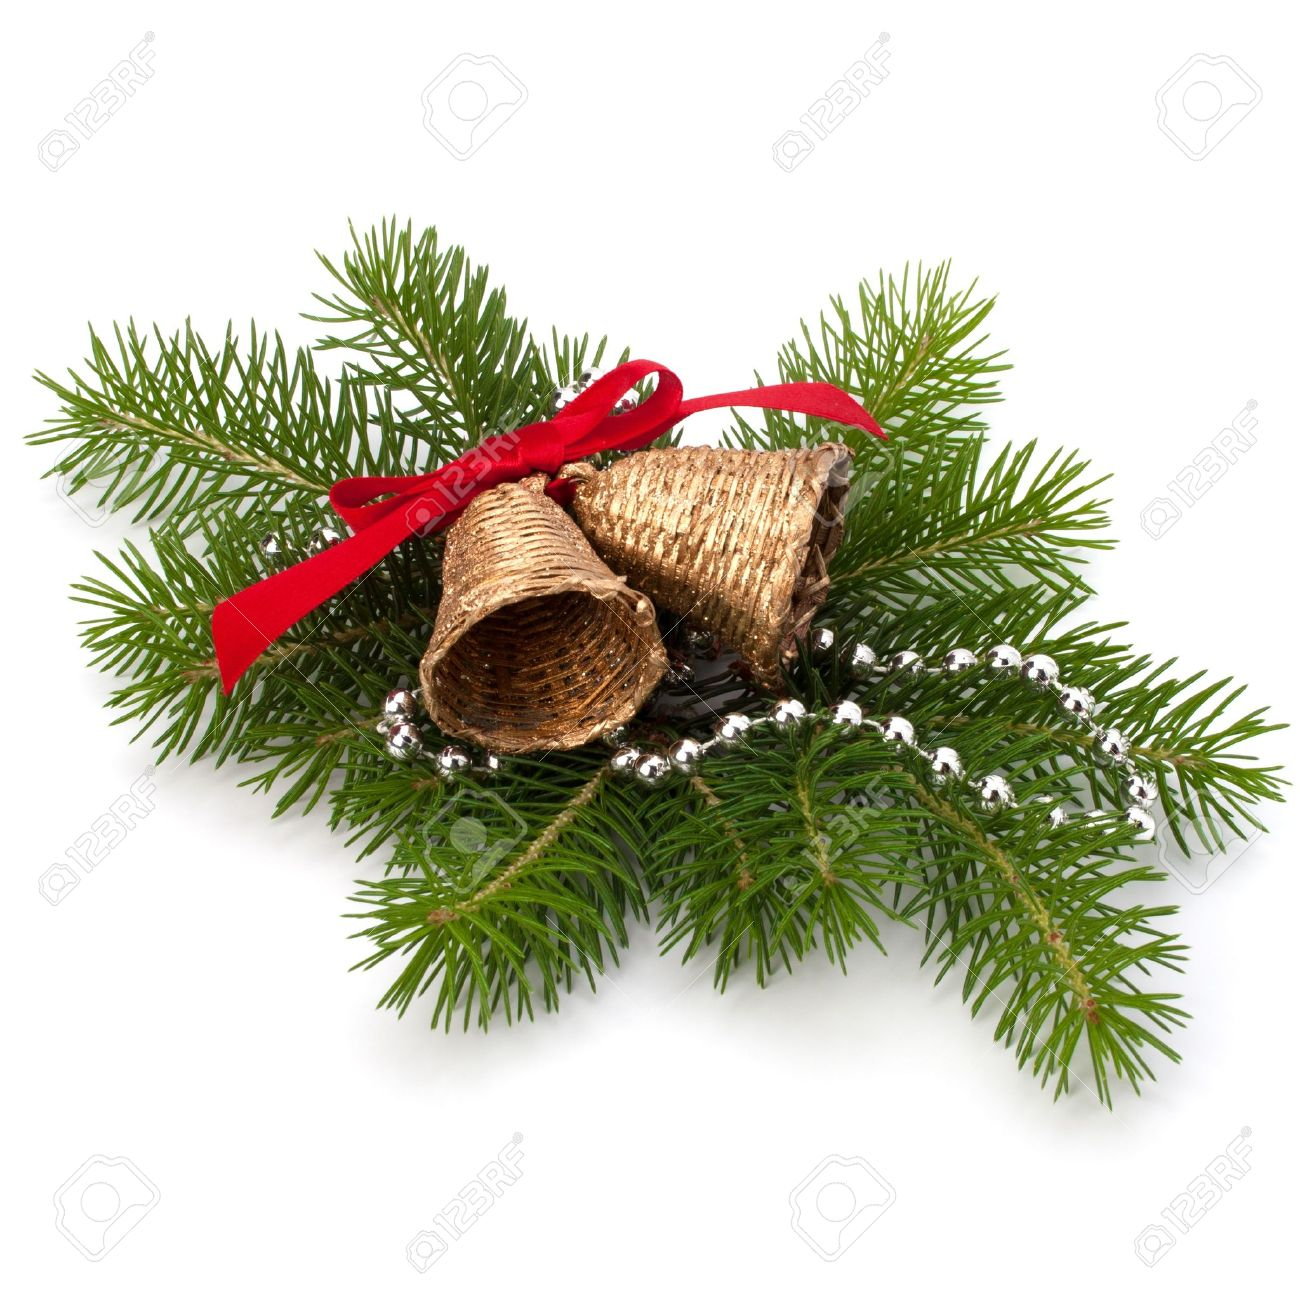 Christmas decoration with bells isolated on white background - 11061250